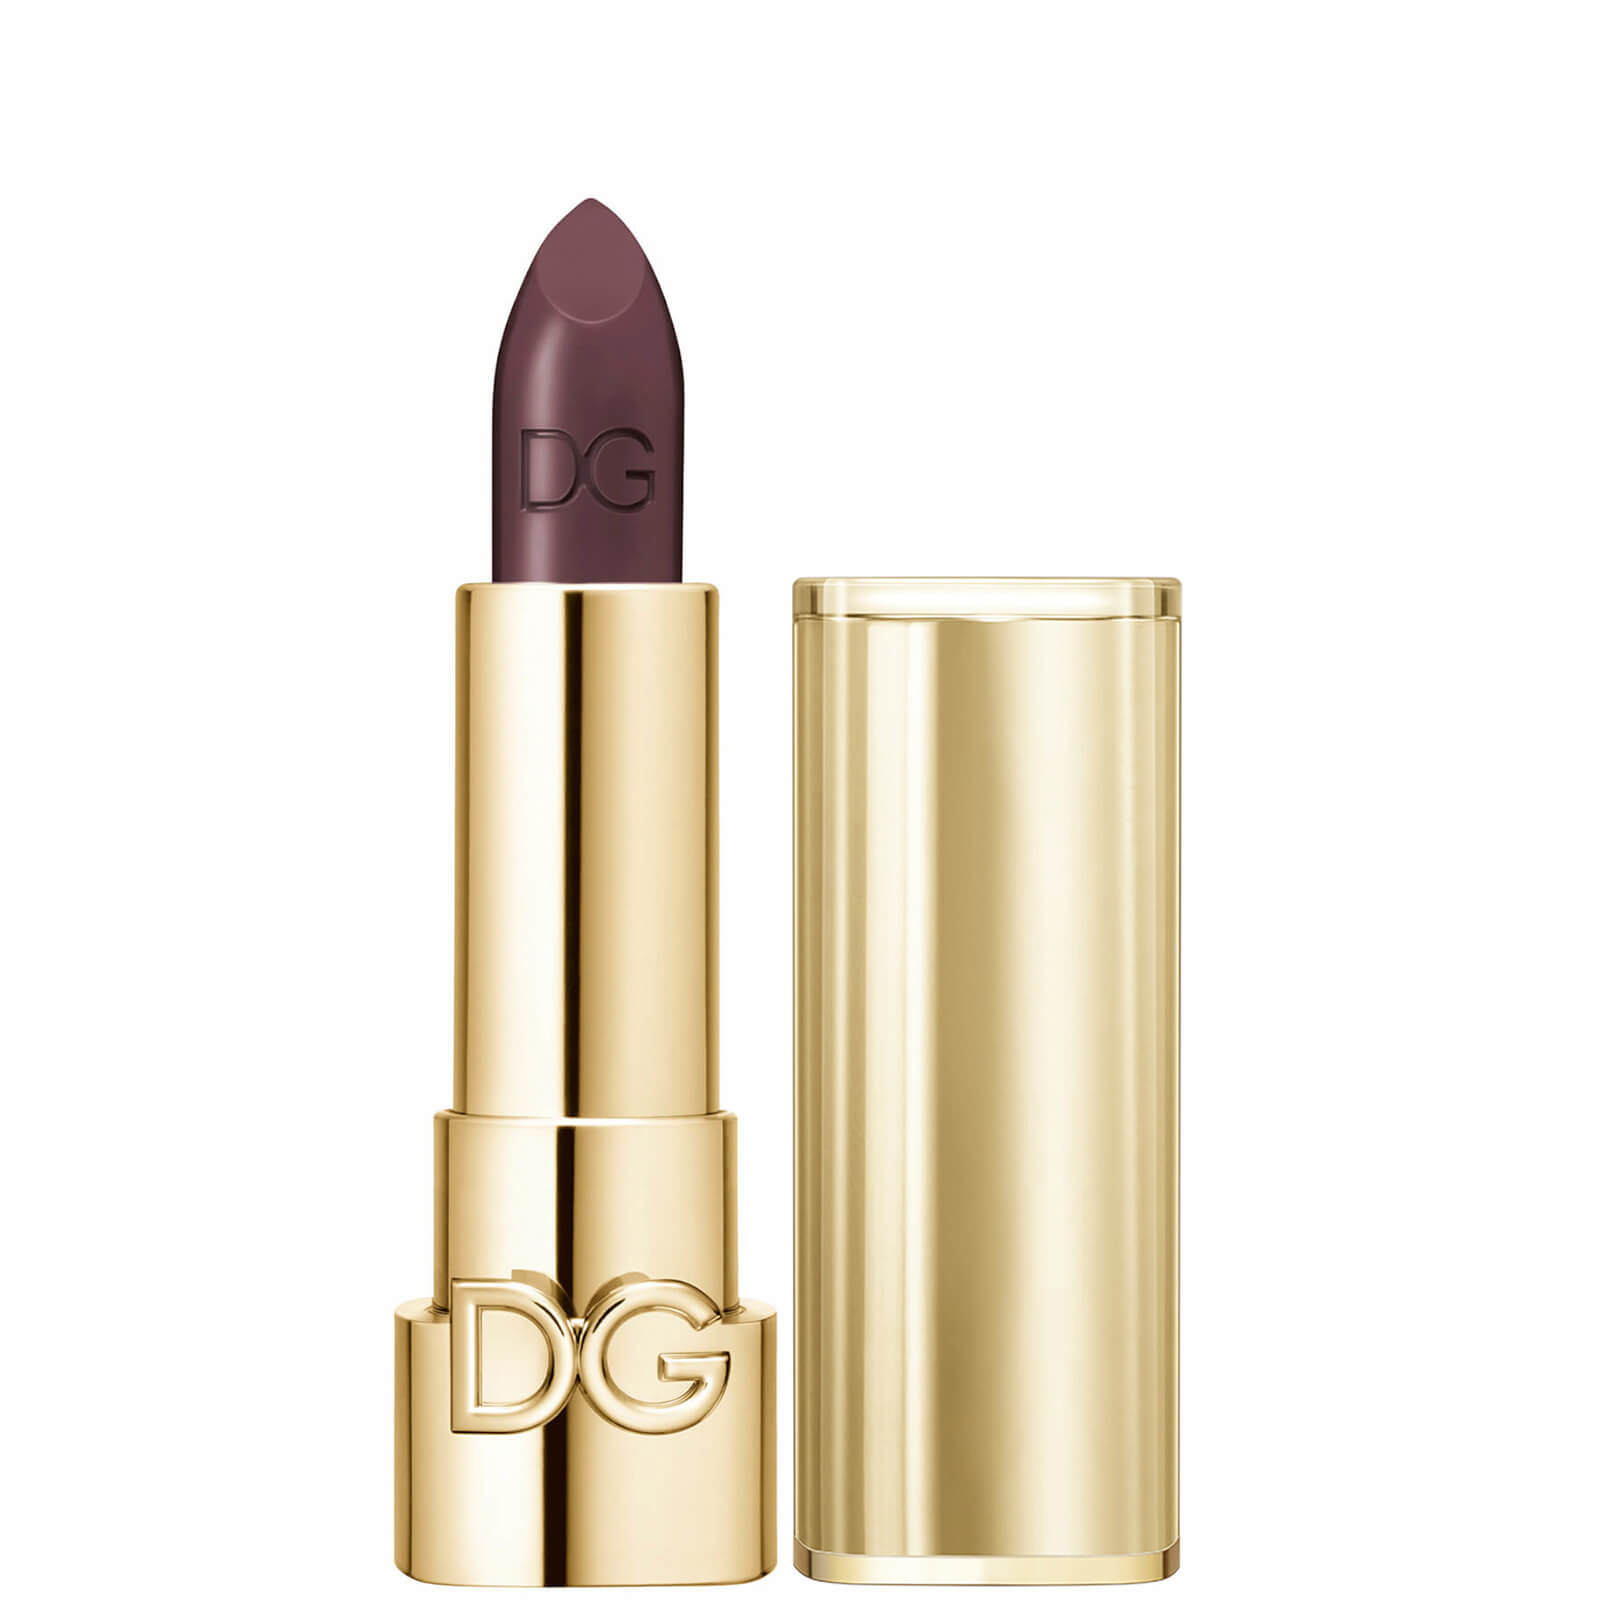 Dolce&Gabbana The Only One Lipstick + Cap (Gold) (Various Shades) - 330 Bright Amethyst